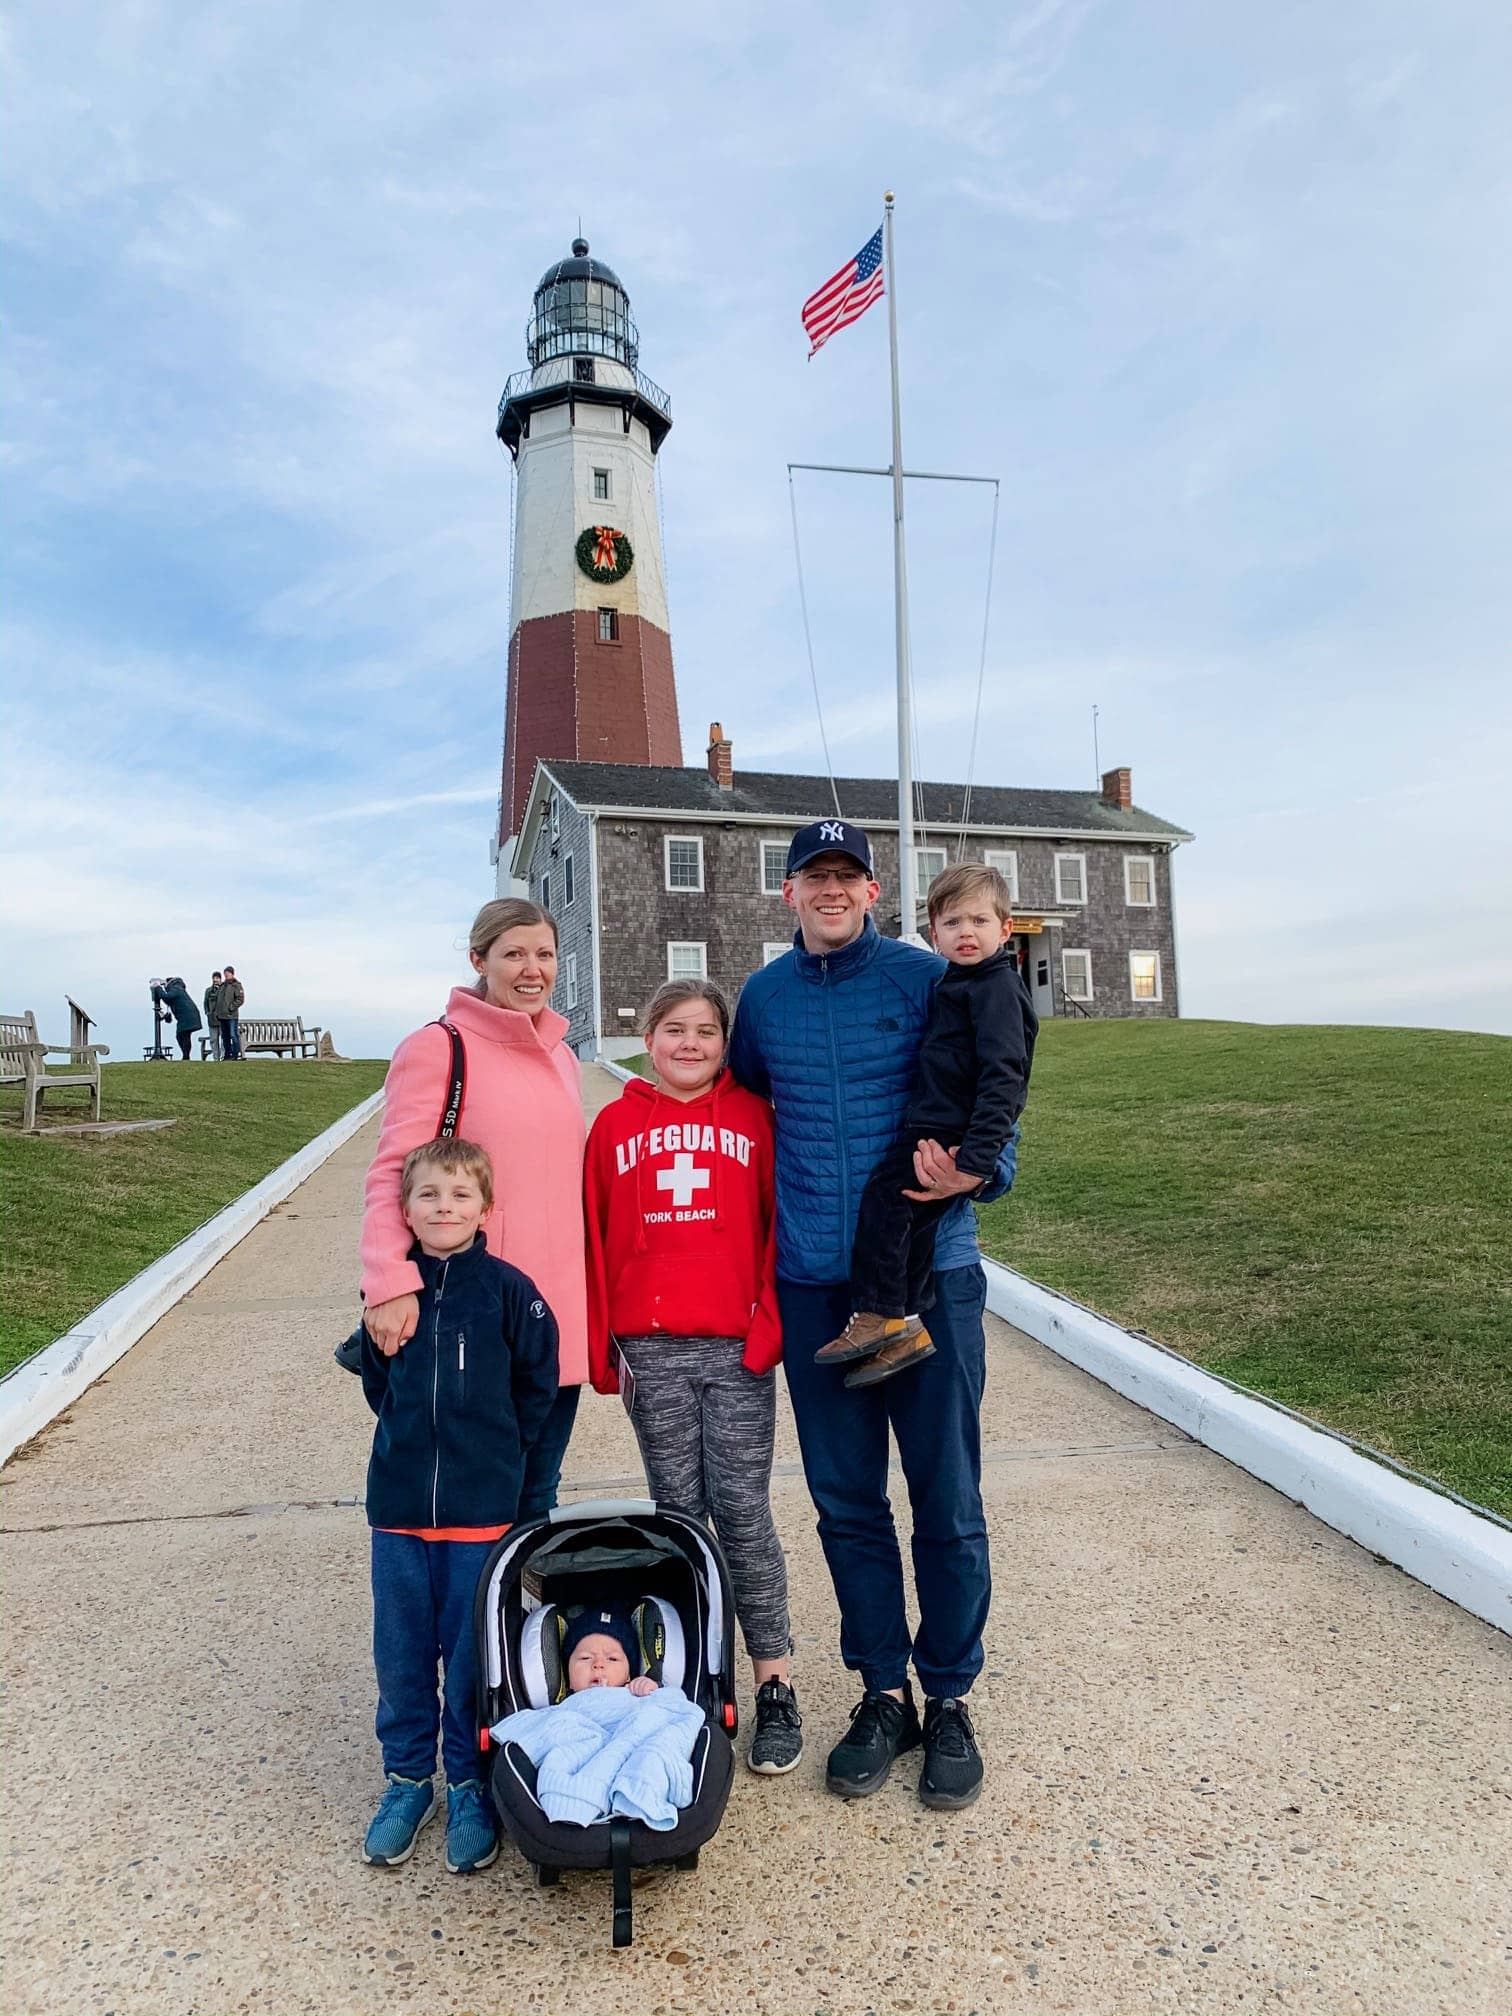 Brennan family in front of a lighthouse